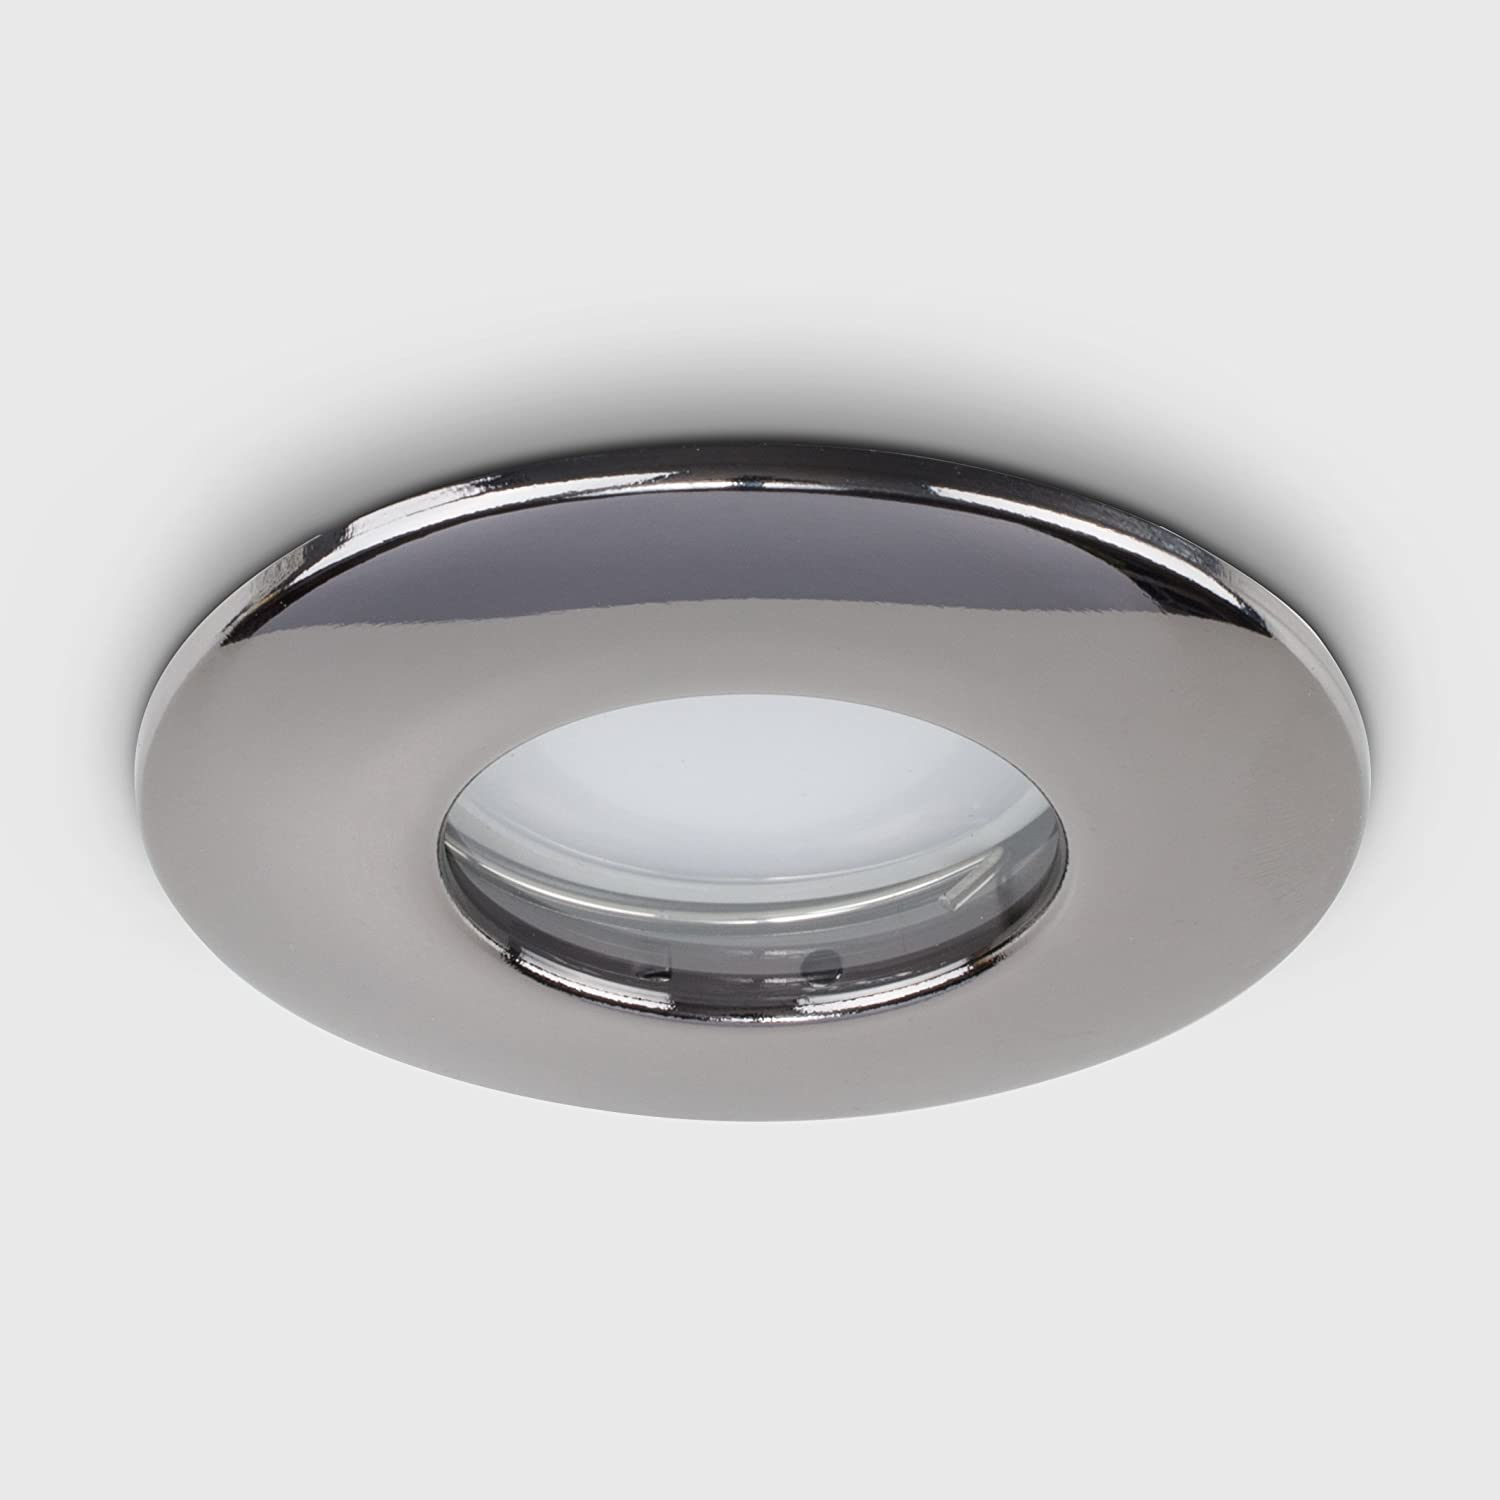 MiniSun Fire Rated Bathroom//Shower IP65 Polished Chrome Domed GU10 Ceiling Downlights